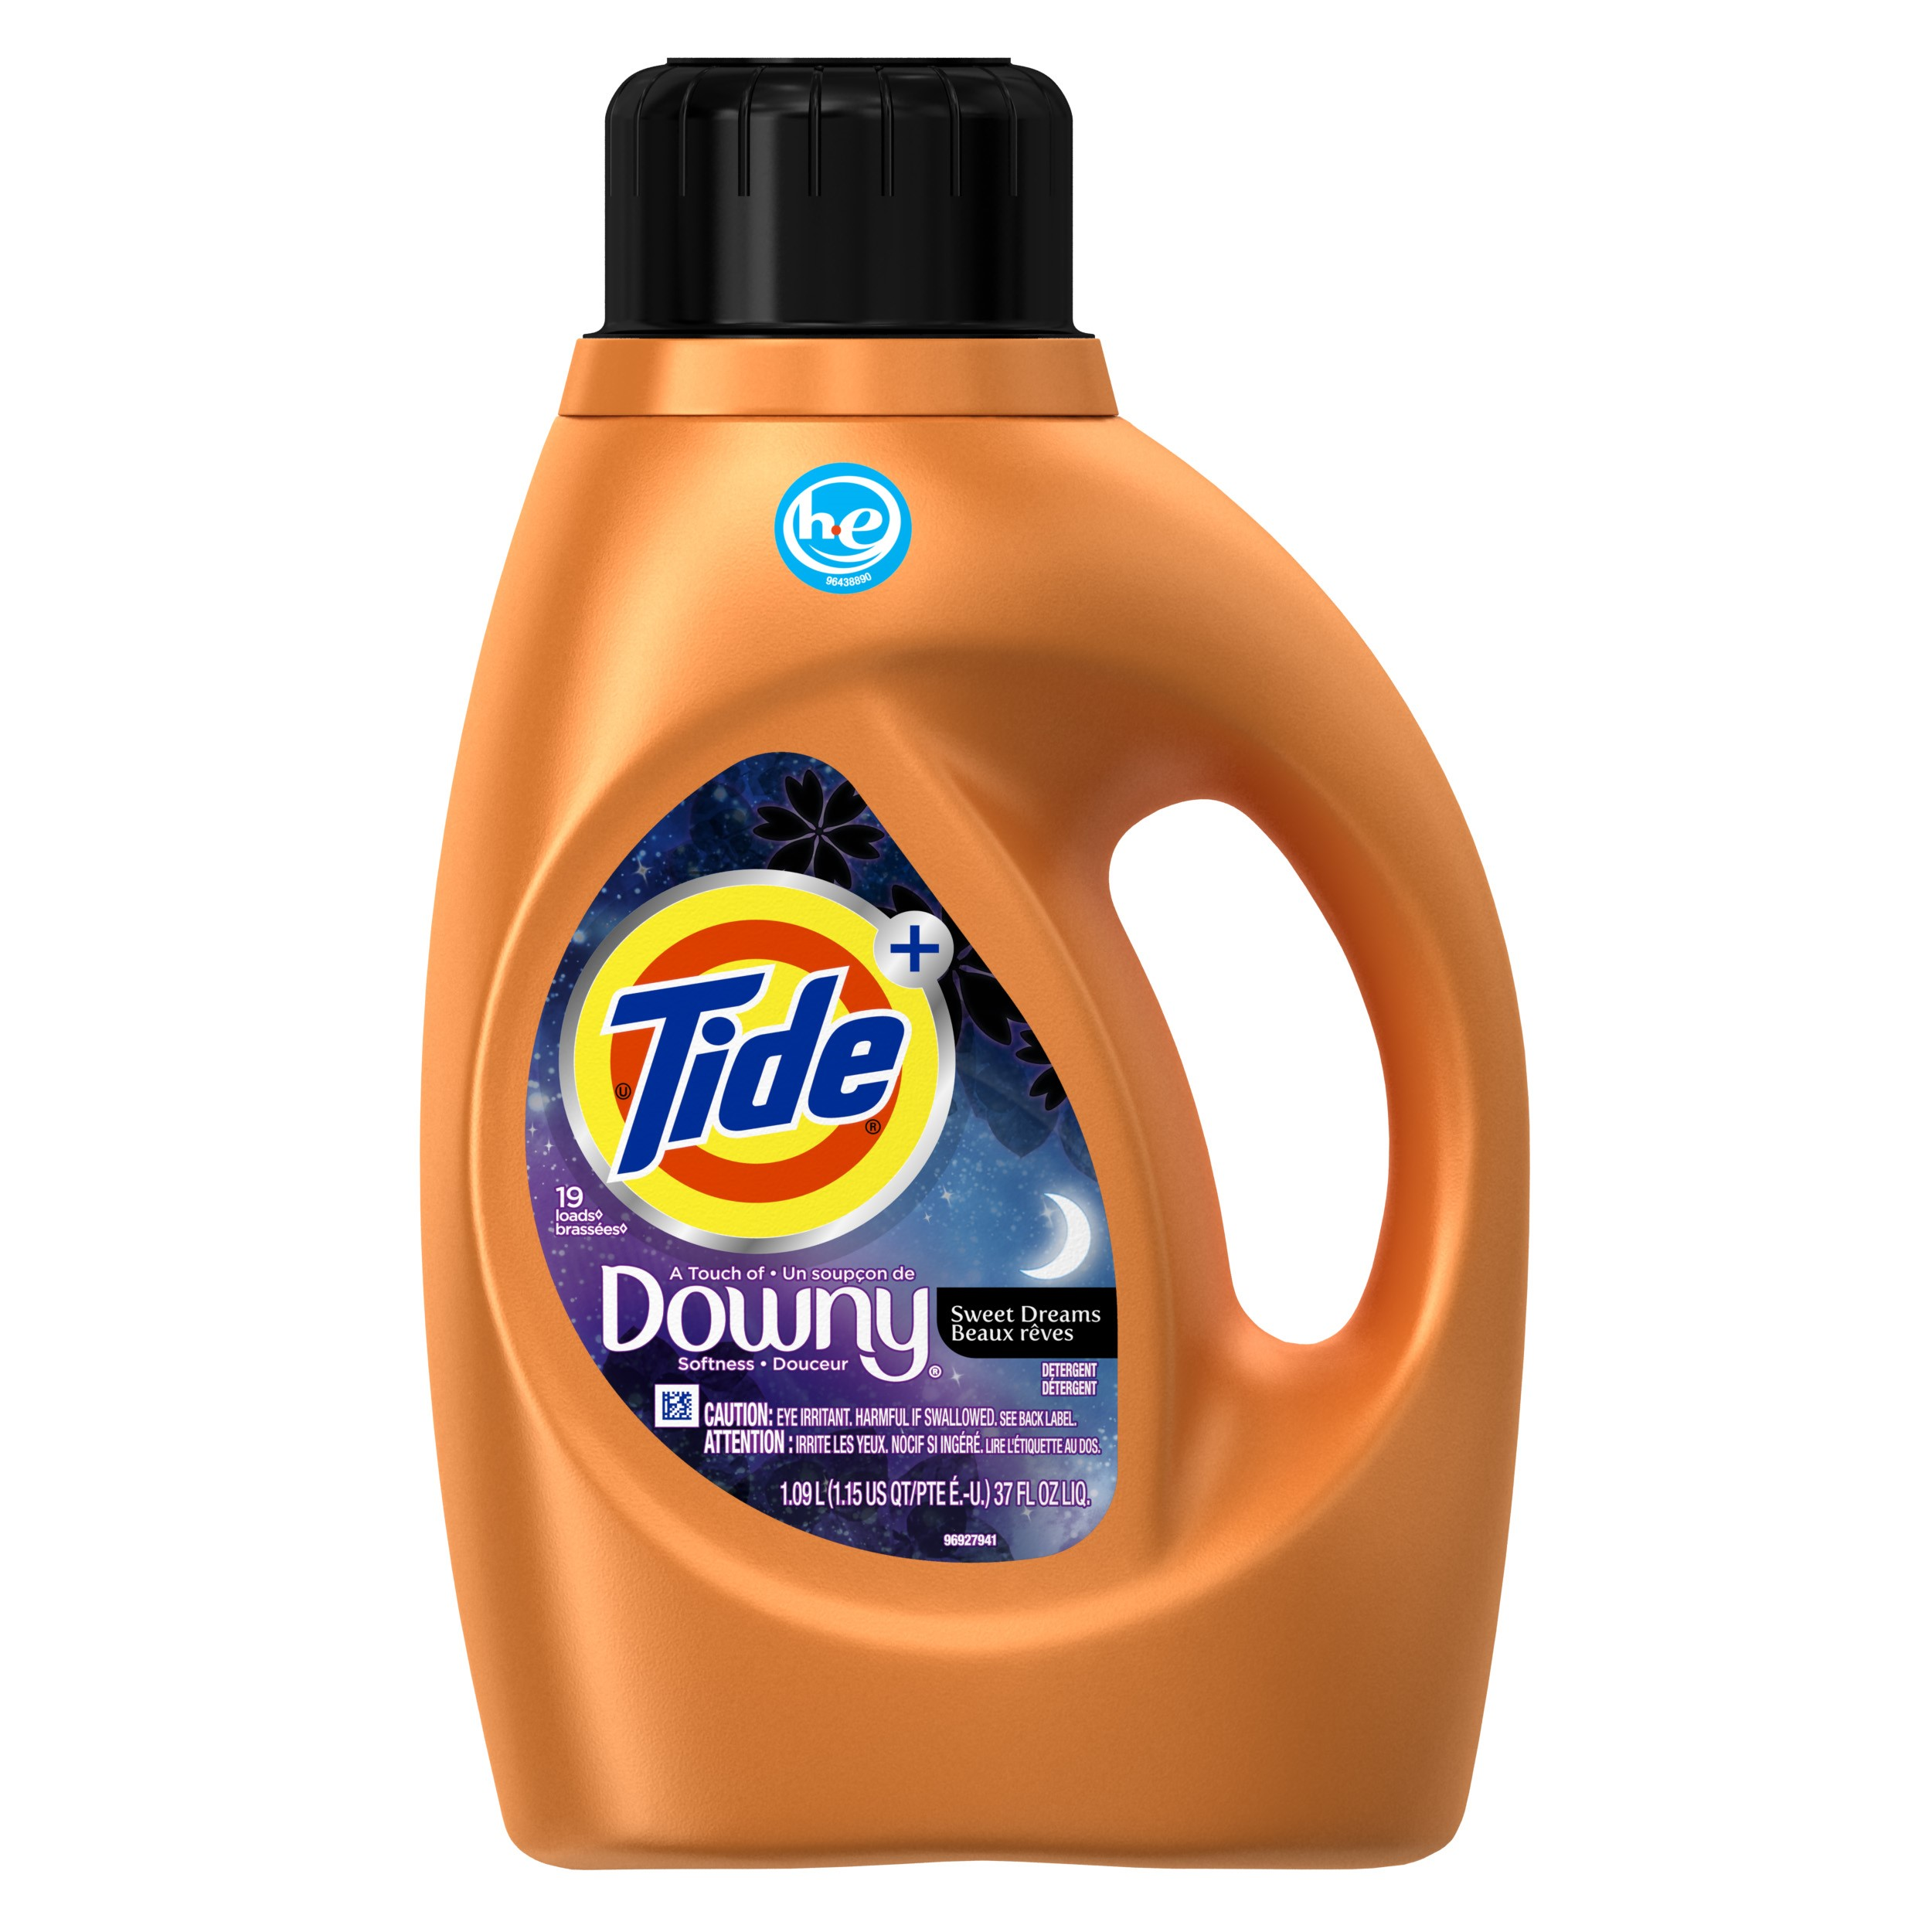 Tide Plus with Downy Laundry Detergent, Sweet Dreams, 19 Loads